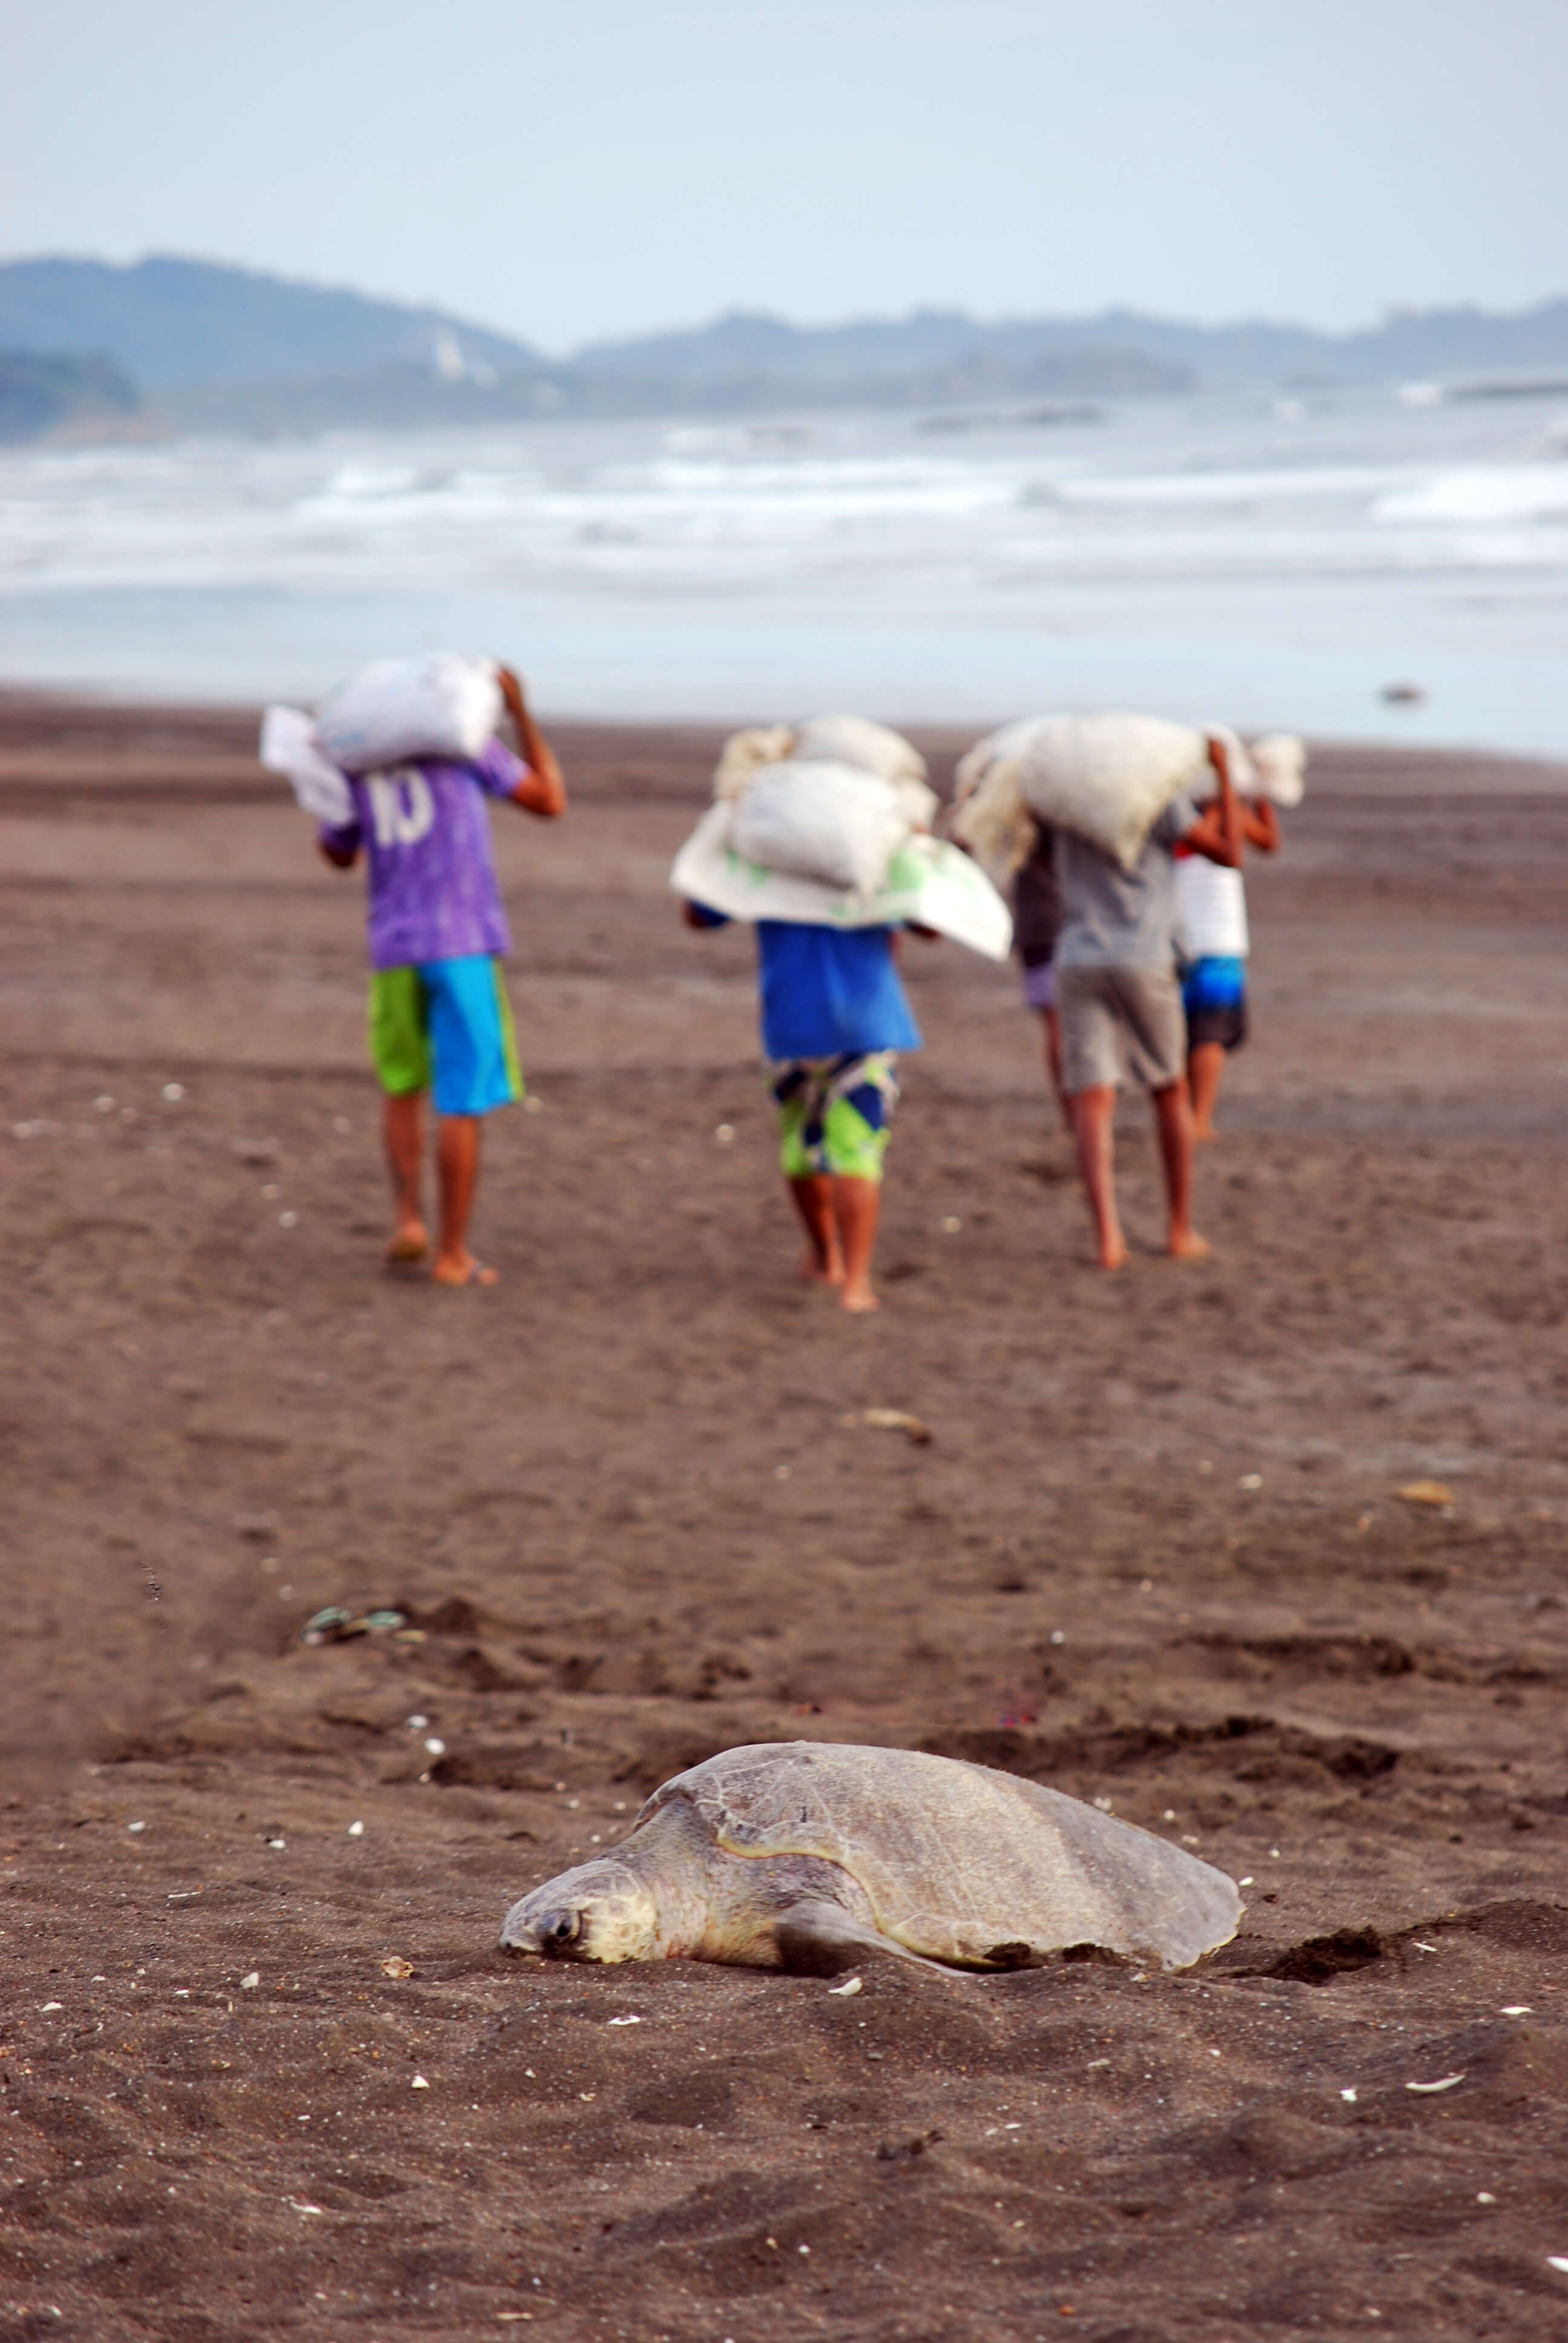 Olive ridley egg harvesting | Earthwatch